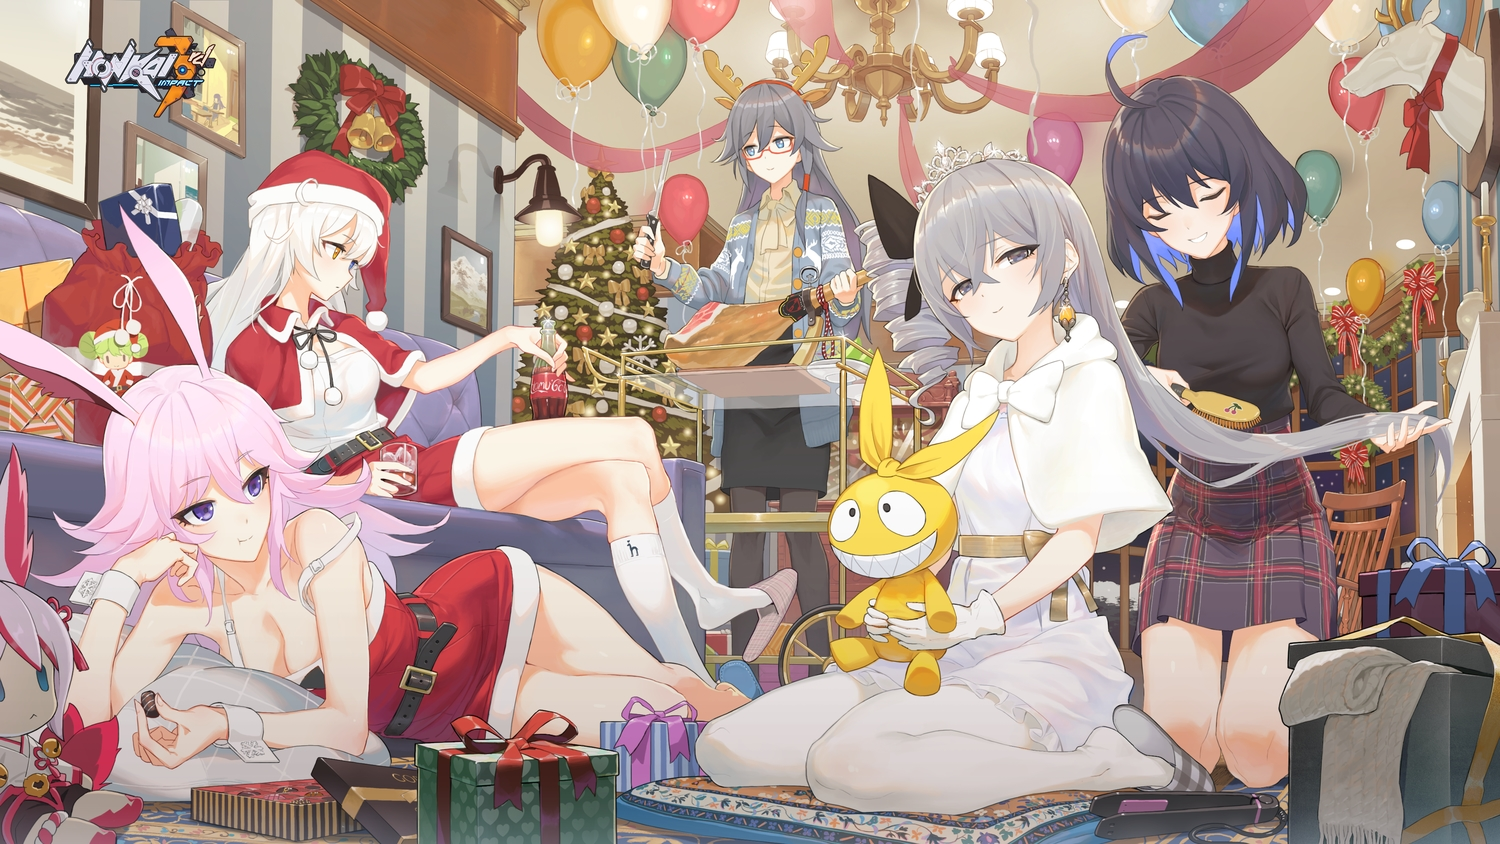 animal_ears aqua_eyes bicolored_eyes black_hair breasts bronya_zaychik bunny_ears christmas cleavage food fu_hua glasses gray_eyes gray_hair hat honkai_impact horns kiana_kaslana knife logo long_hair pantyhose pink_hair purple_eyes santa_costume santa_hat seele_vollerei tagme_(artist) white_hair yae_sakura_(benghuai_xueyuan)